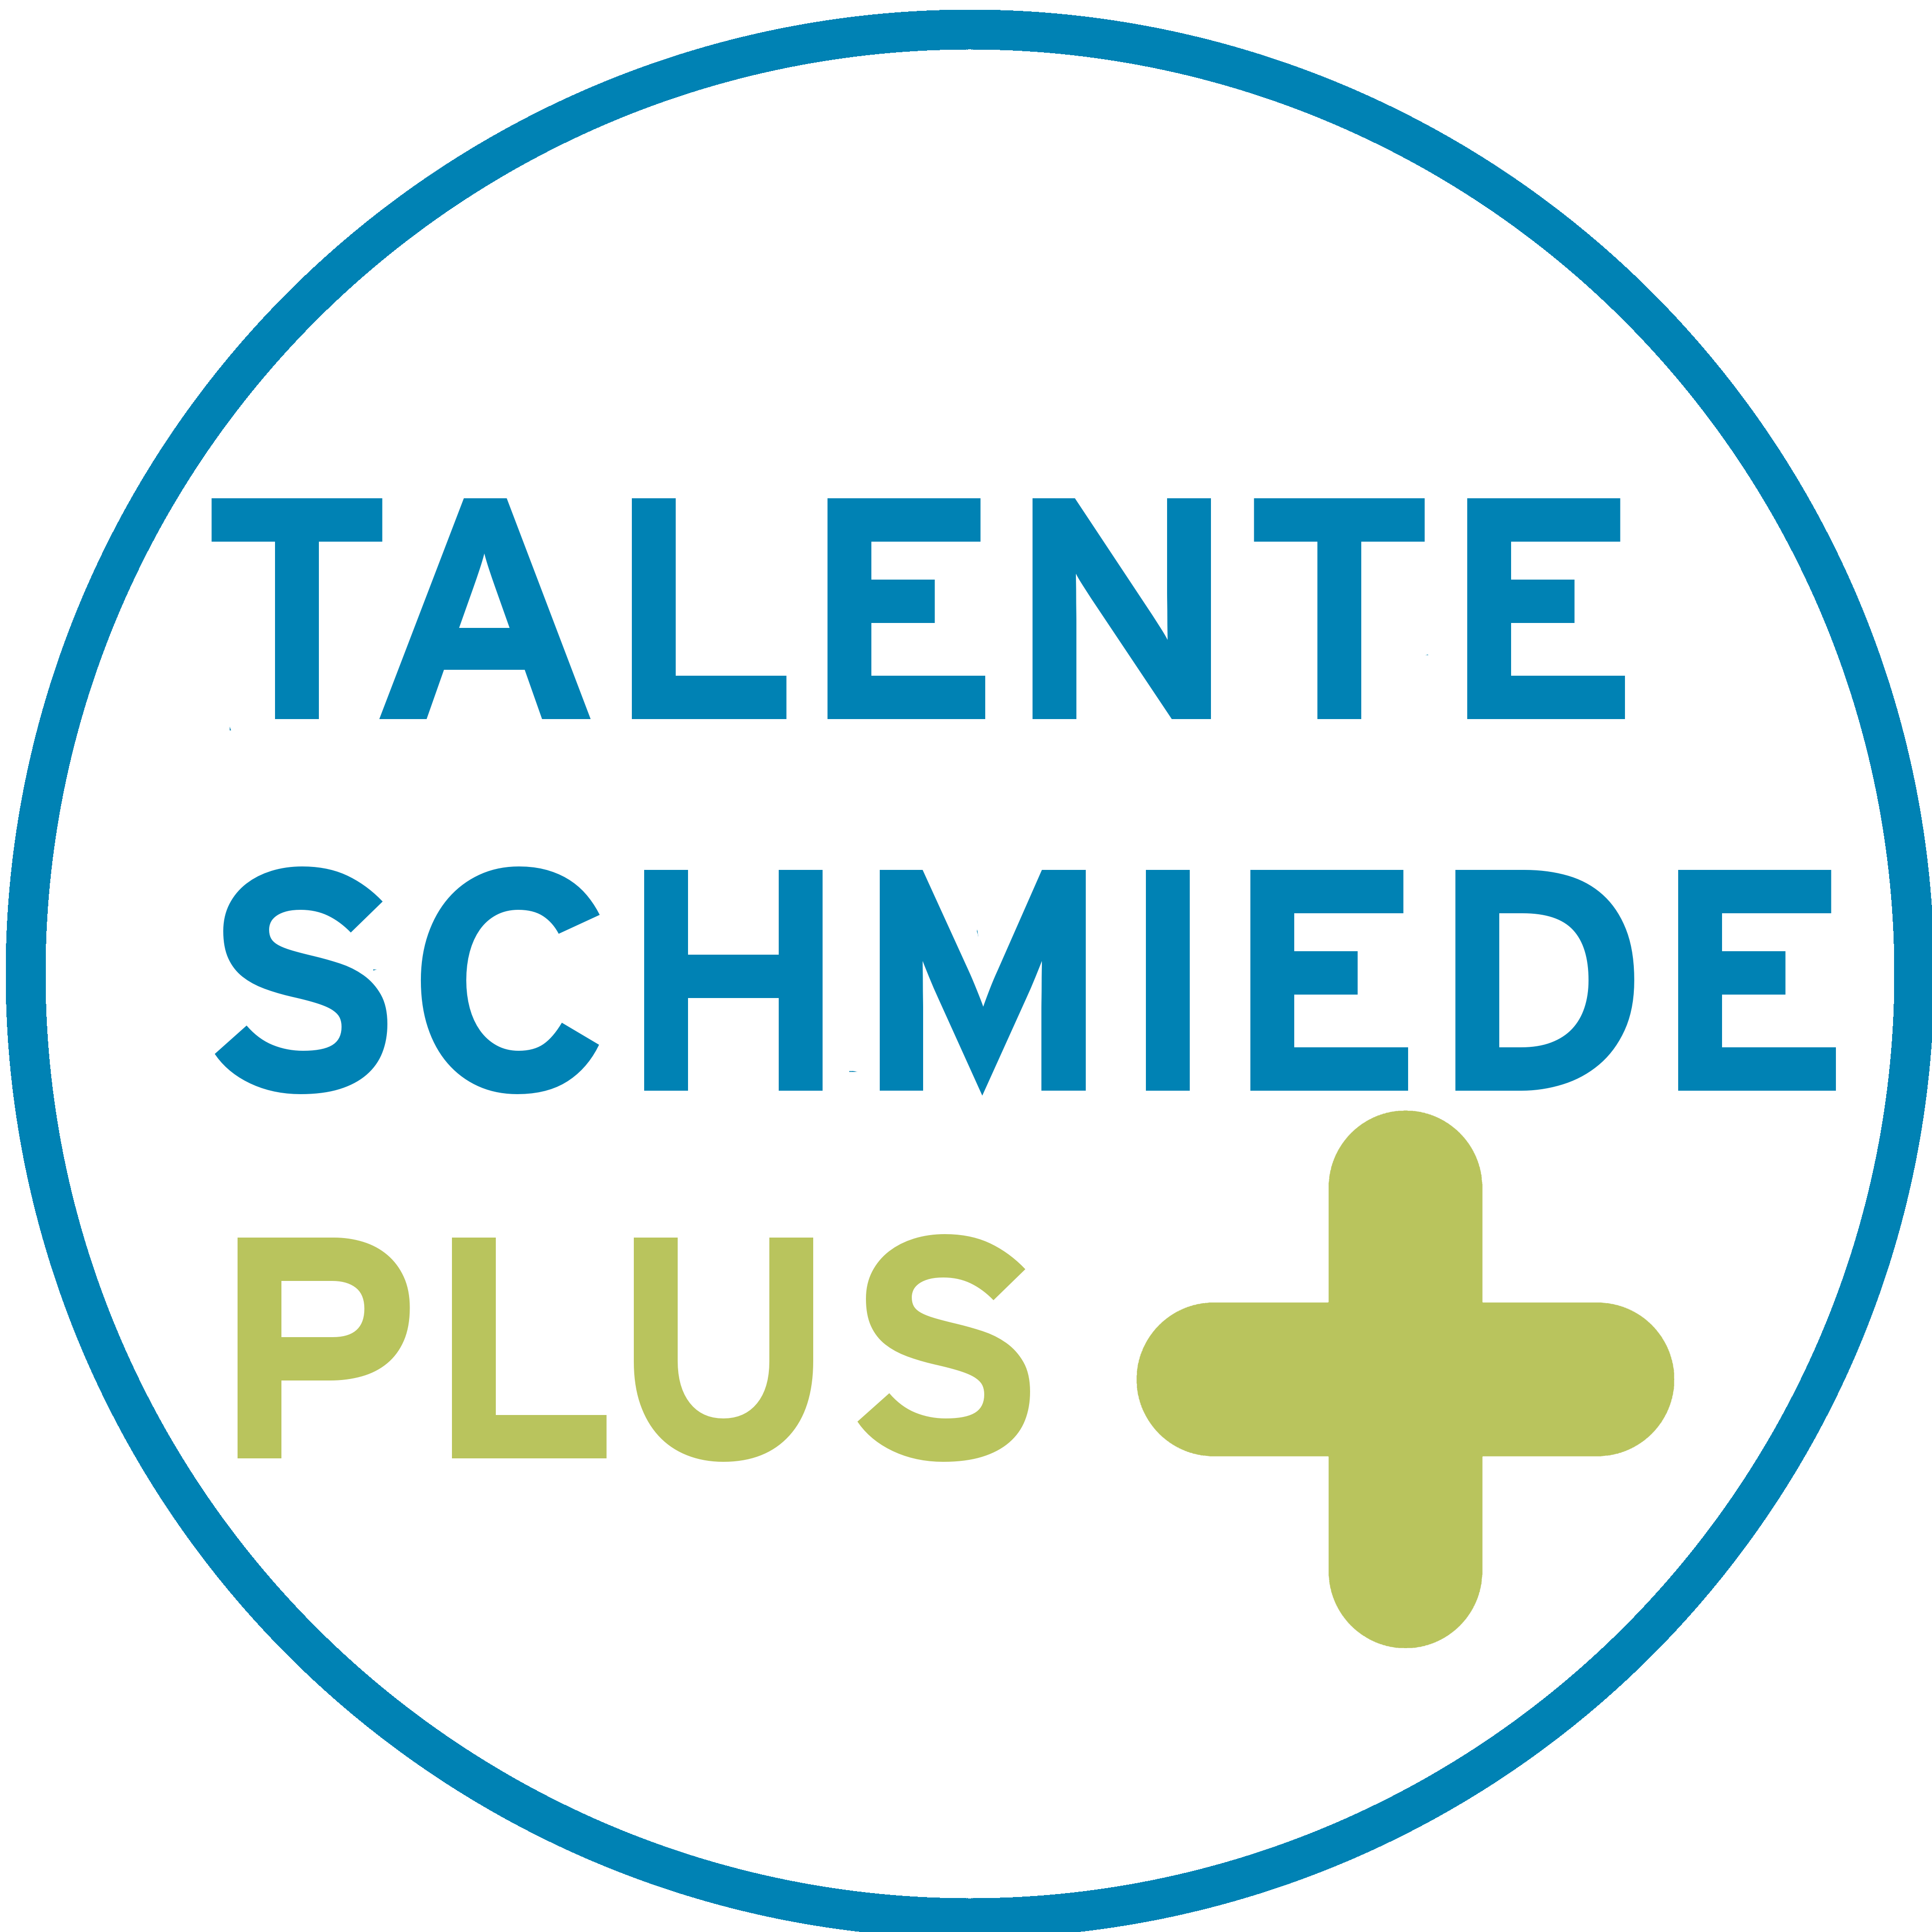 Talenteschmiede Plus